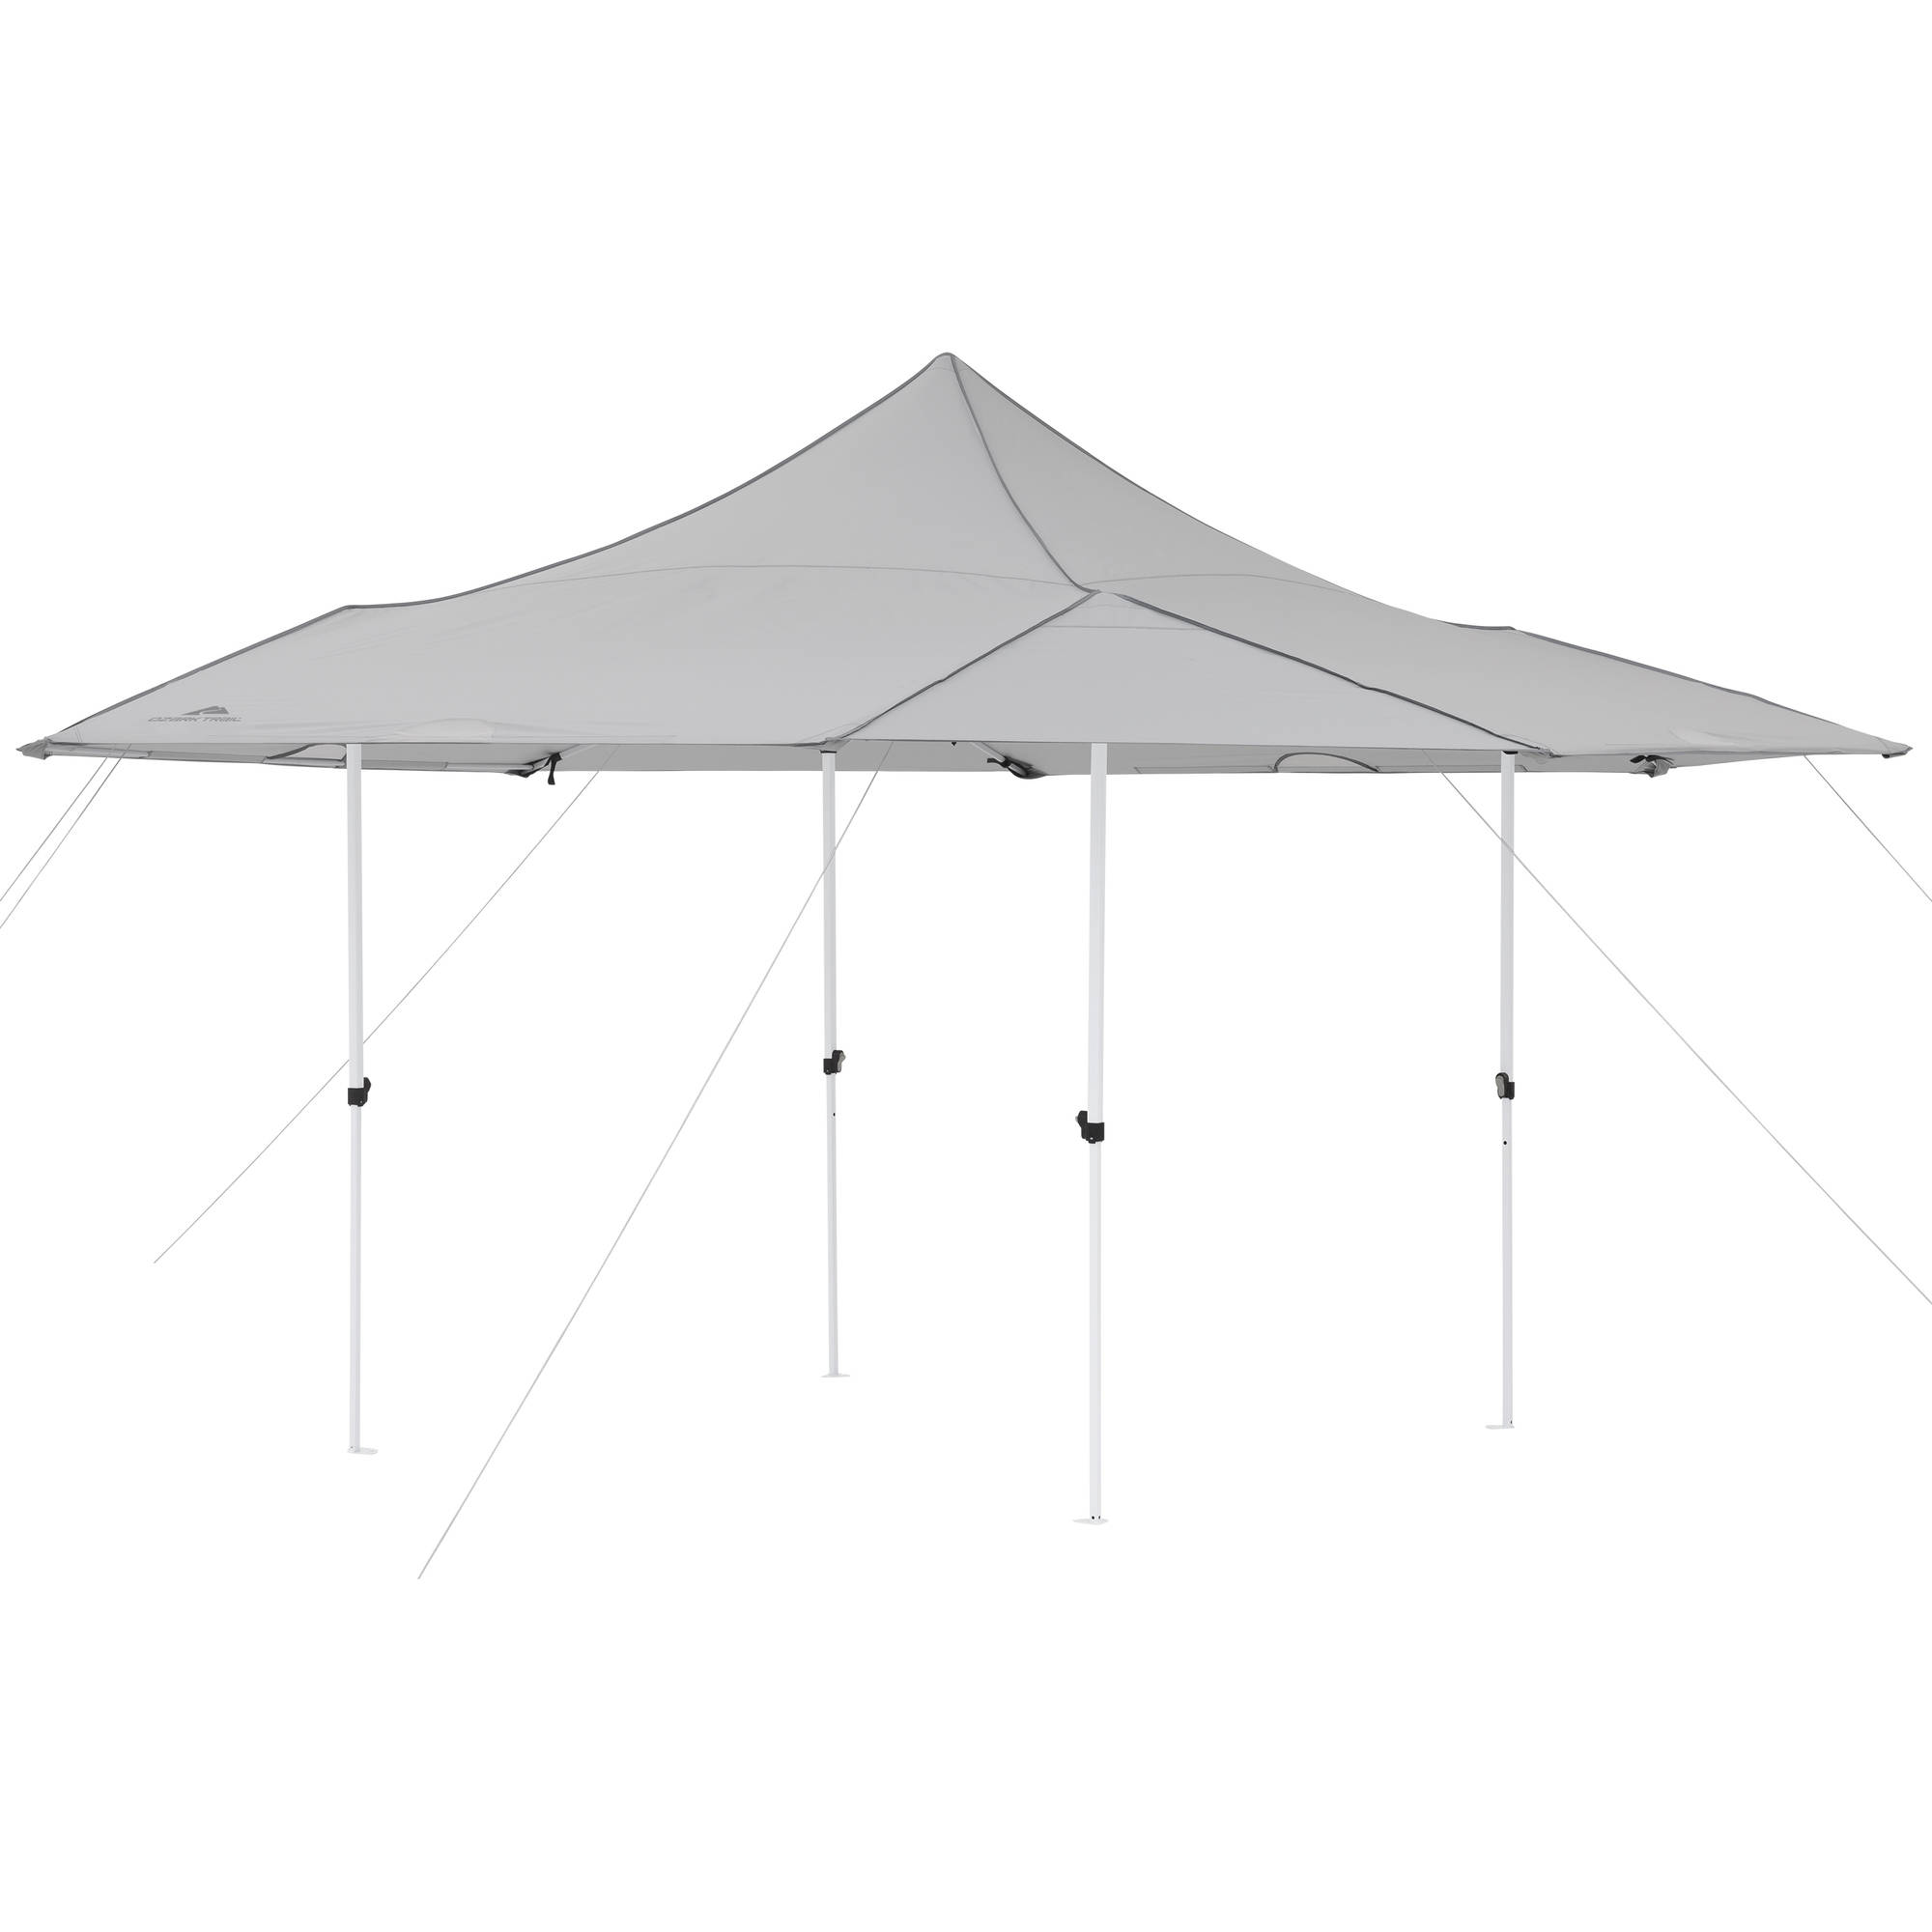 Ozark Trail 16u0027 x 16u0027 Instant Canopy with Convertible Walls  sc 1 st  Walmart & Ozark Trail 16u0027 x 16u0027 Instant Canopy with Convertible Walls ...